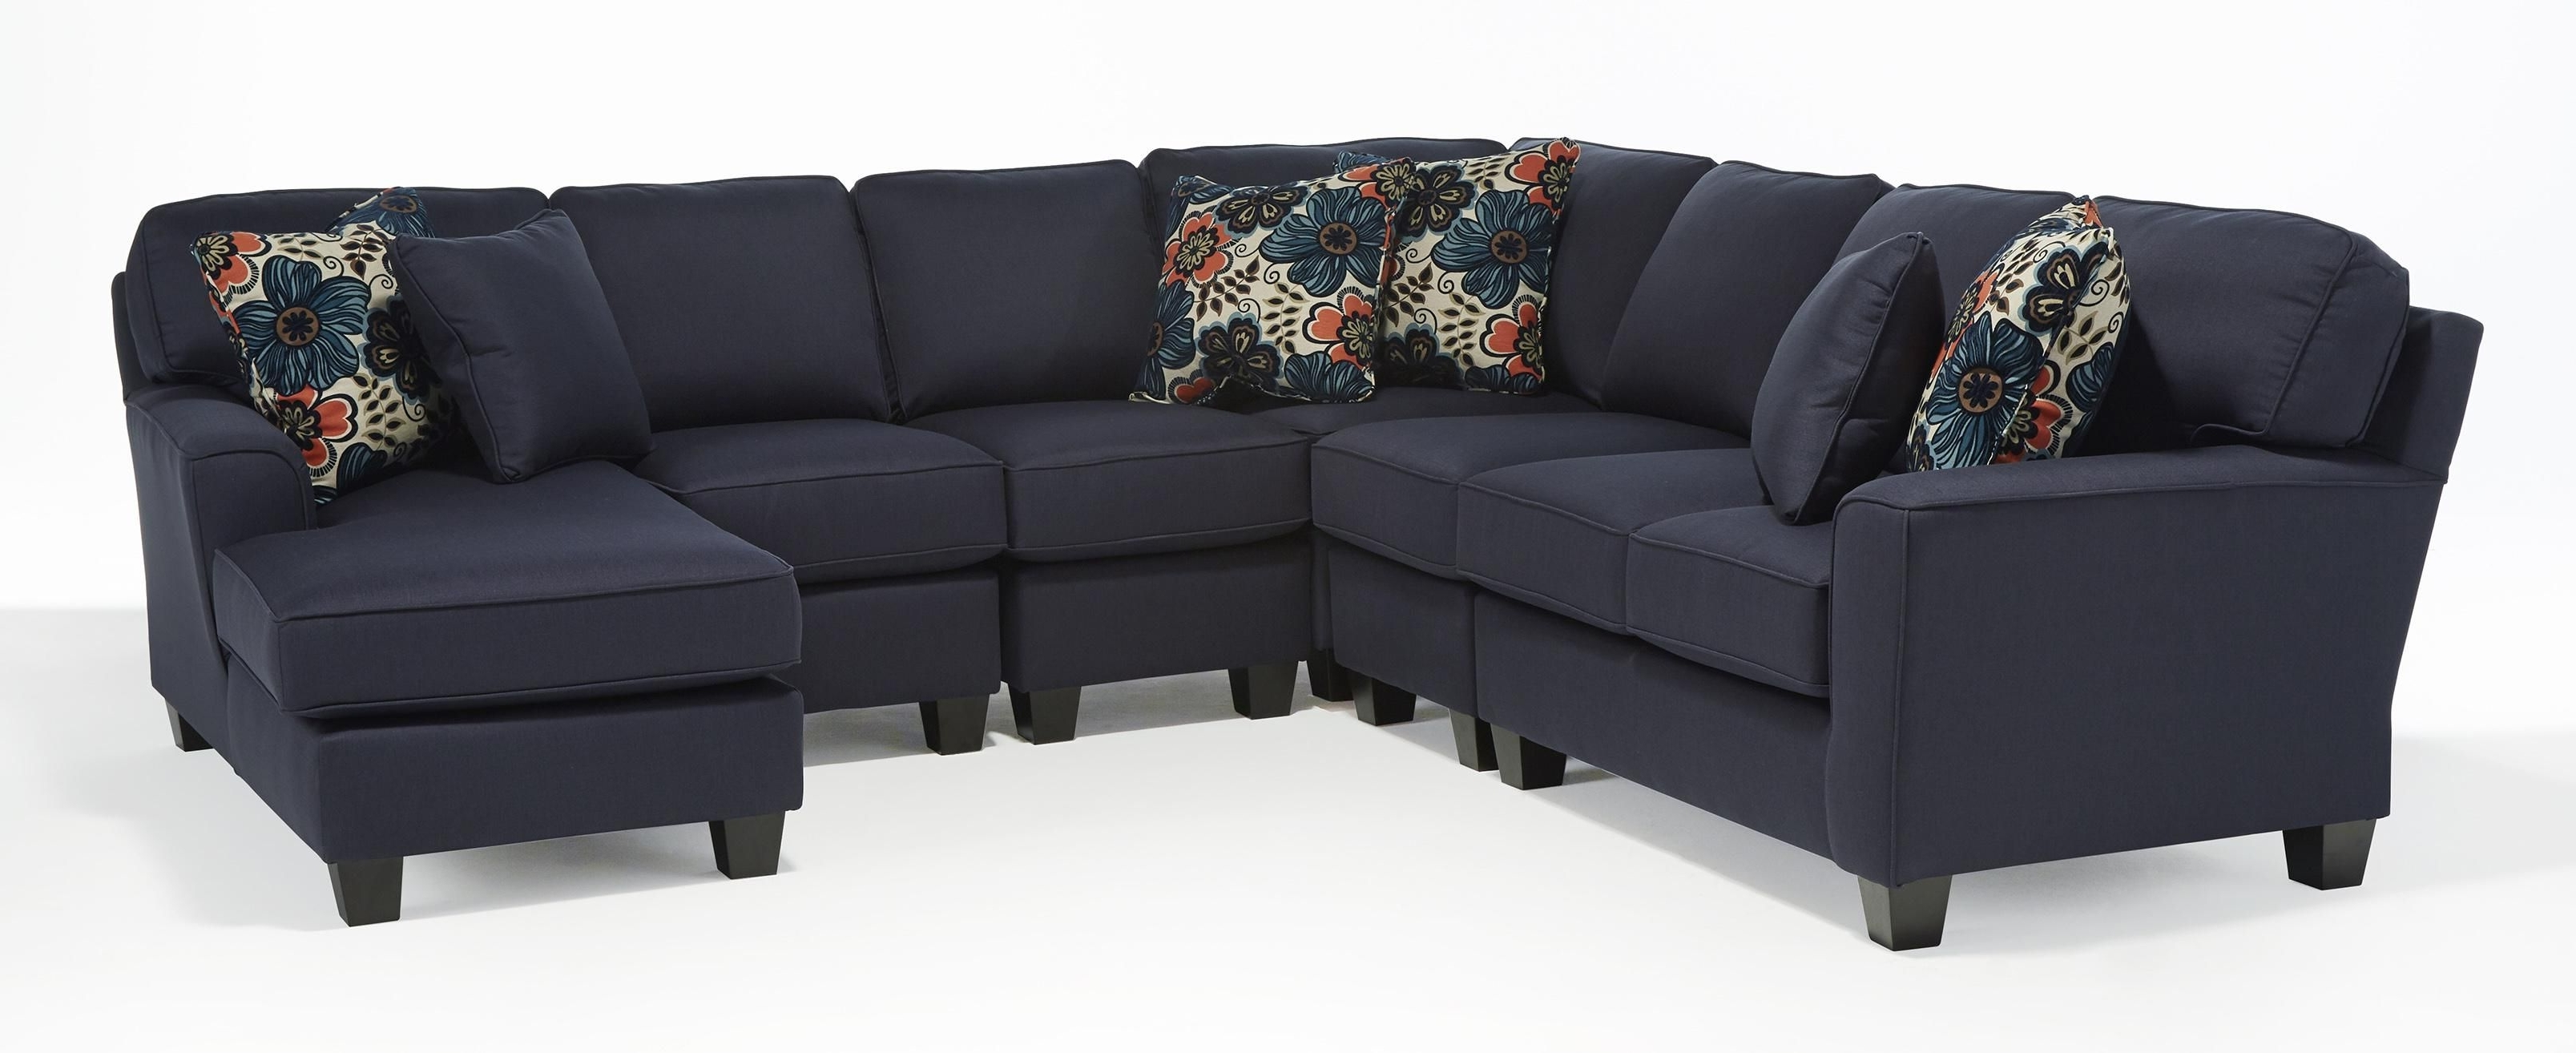 Best Home Furnishings Annabel Five Piece Customizable Sectional Pertaining To Popular Customizable Sectional Sofas (View 2 of 20)